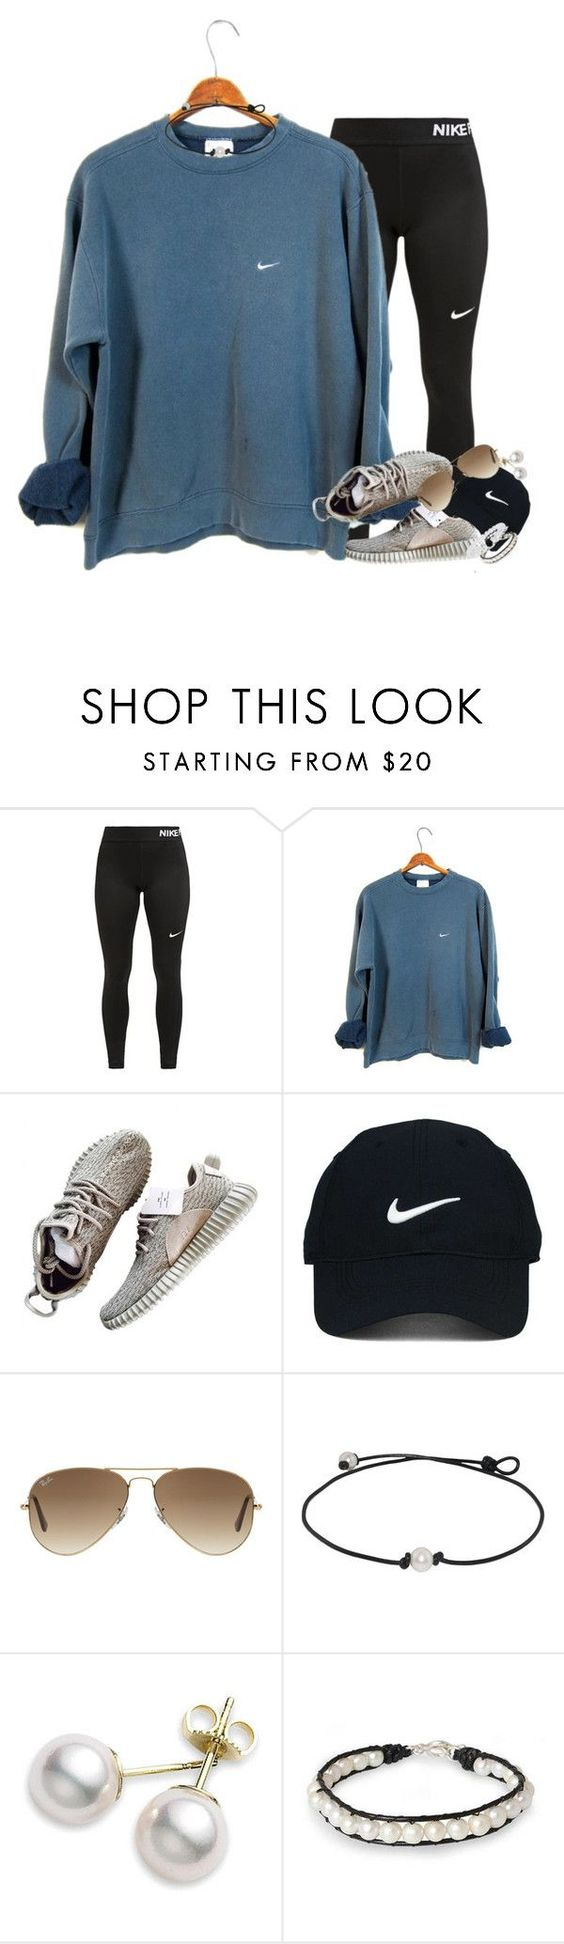 """""""random tag :)"""" by kate-elizabethh ❤ liked on Polyvore featuring NIKE, Nike Golf, Ray-Ban, Mikimoto, NOVICA and country"""